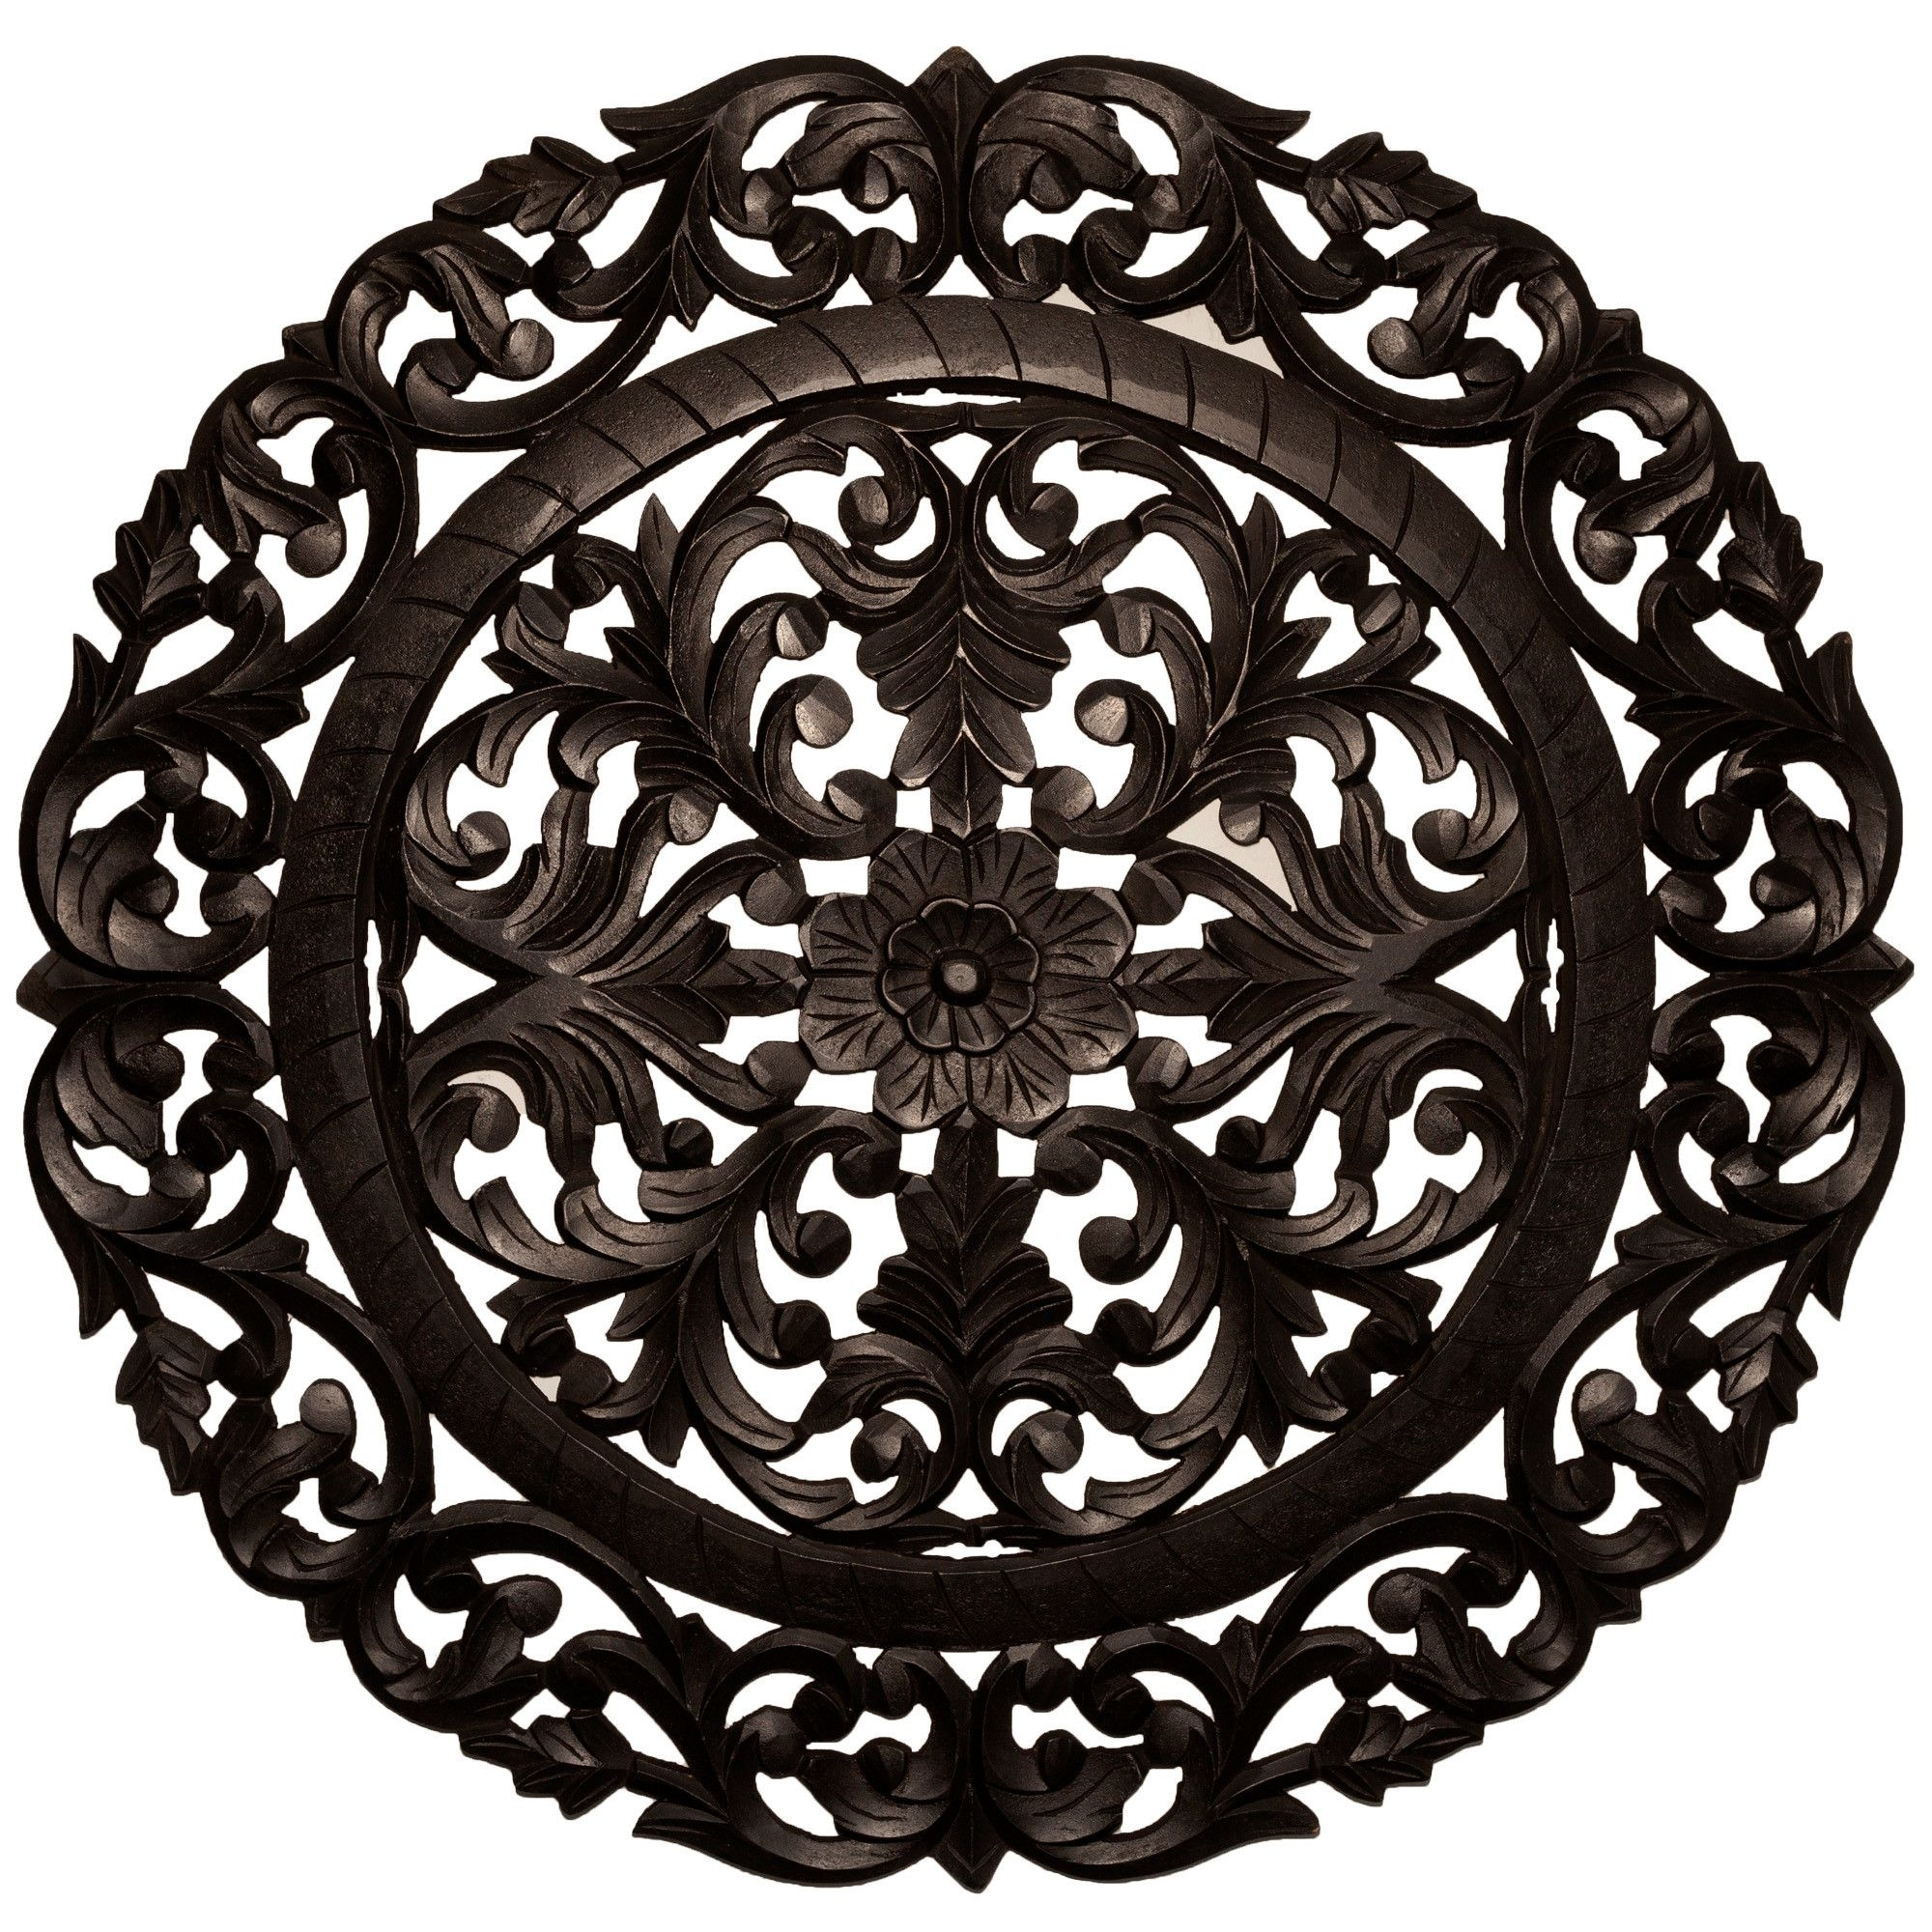 Leroy Handcrafted Medallion Wall Decor | Wayfair | Building The Nest with regard to Most Popular Medallion Wall Art